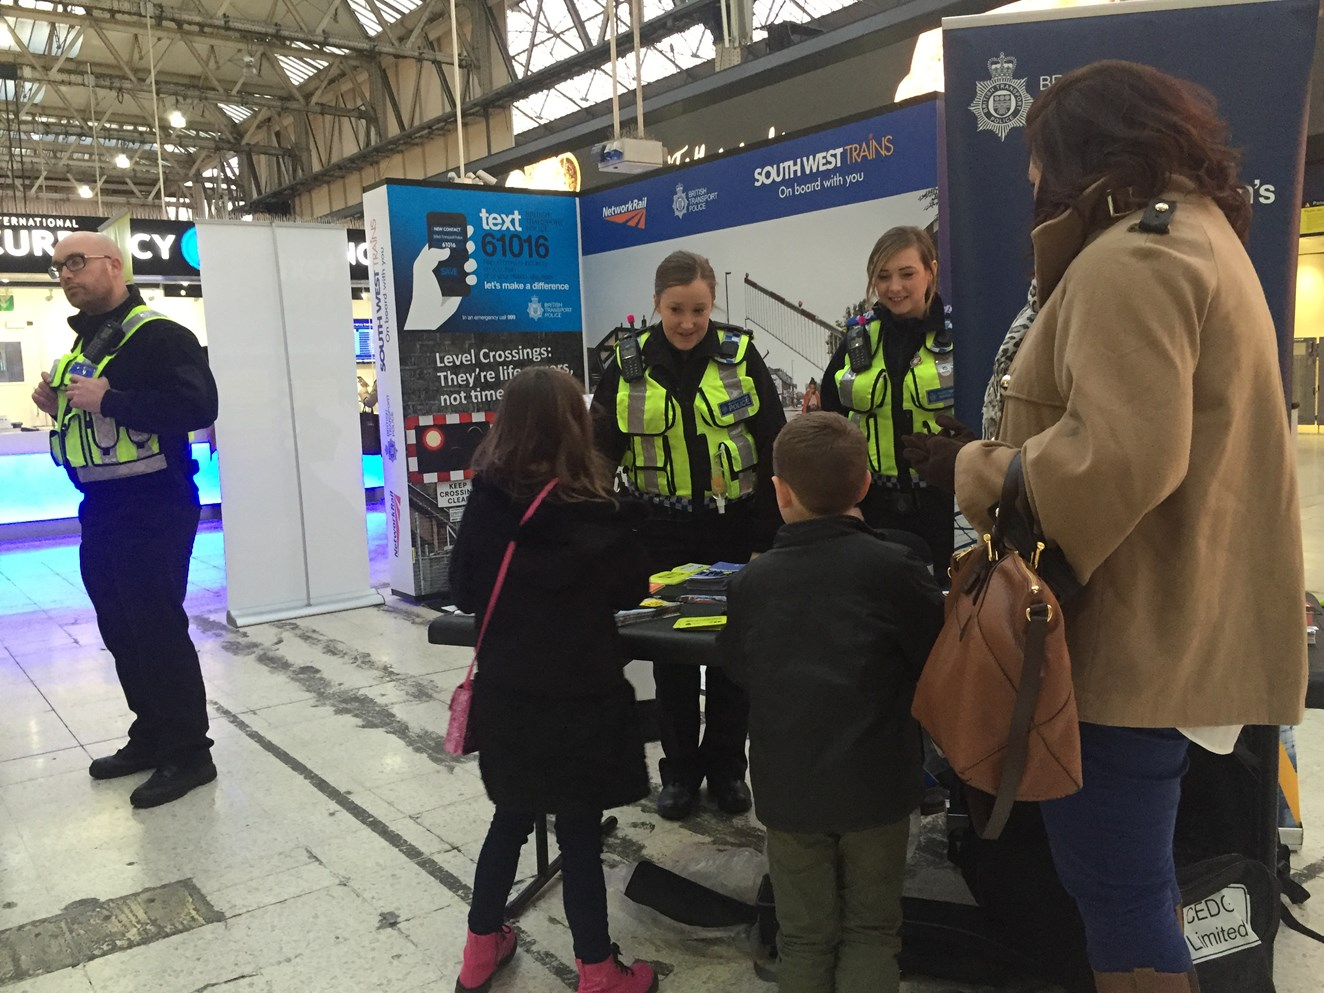 Network Rail and South West Trains ask passengers to stay safe near the railway this winter: Members of the public were invited to find out more about how they could stay safe near the railway